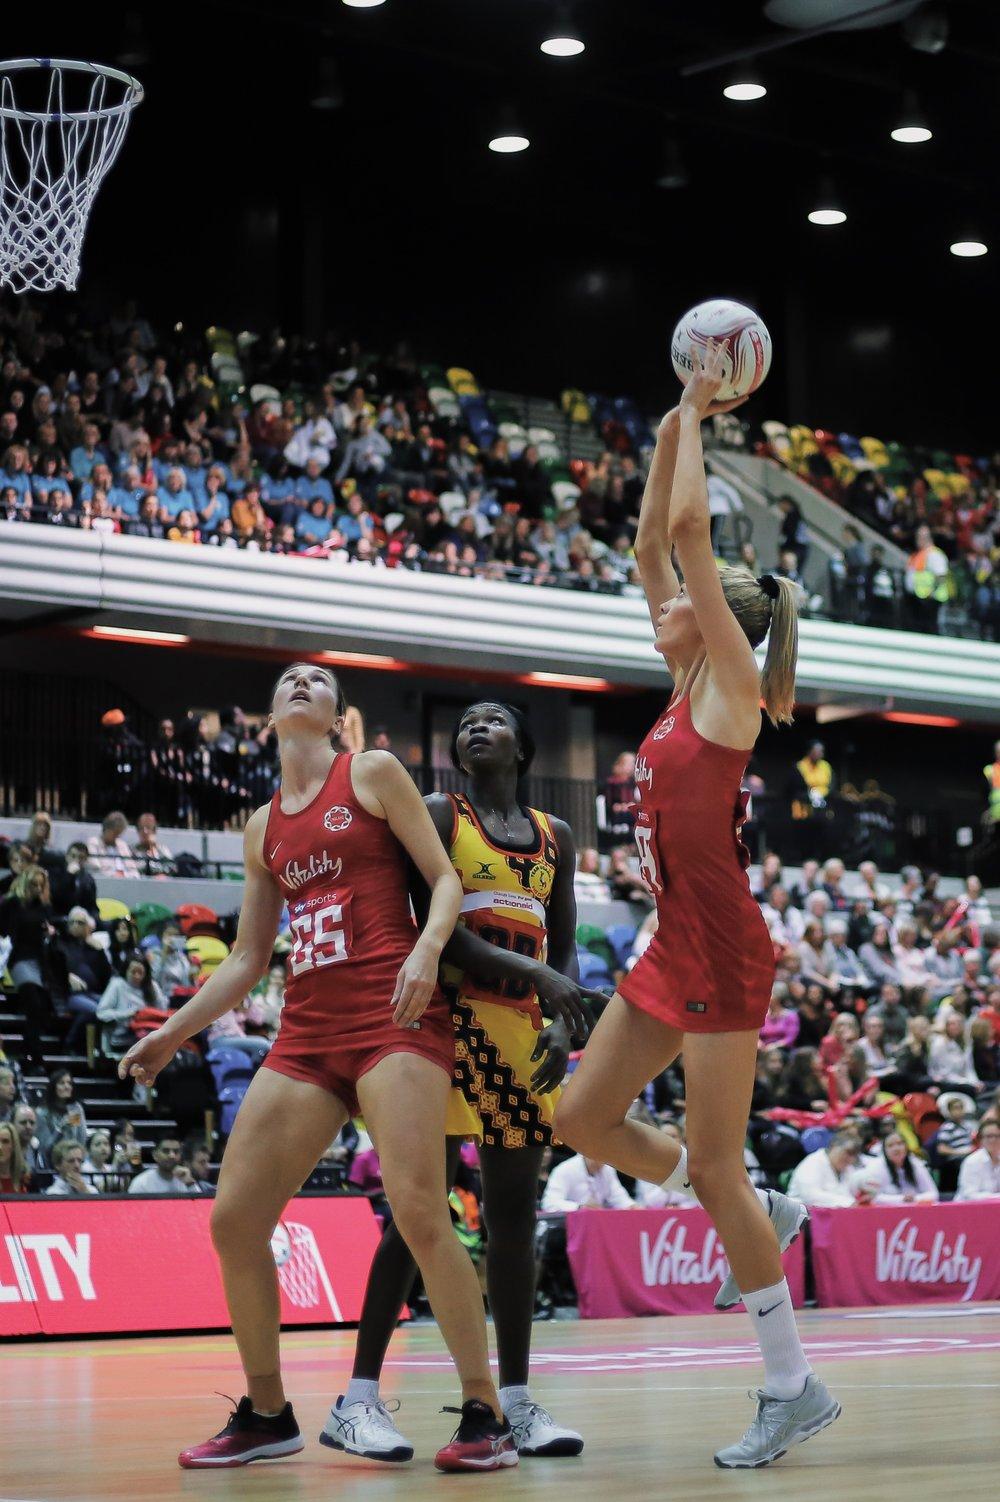 womens-netball-sport-england-uganda-international-series-07.jpg